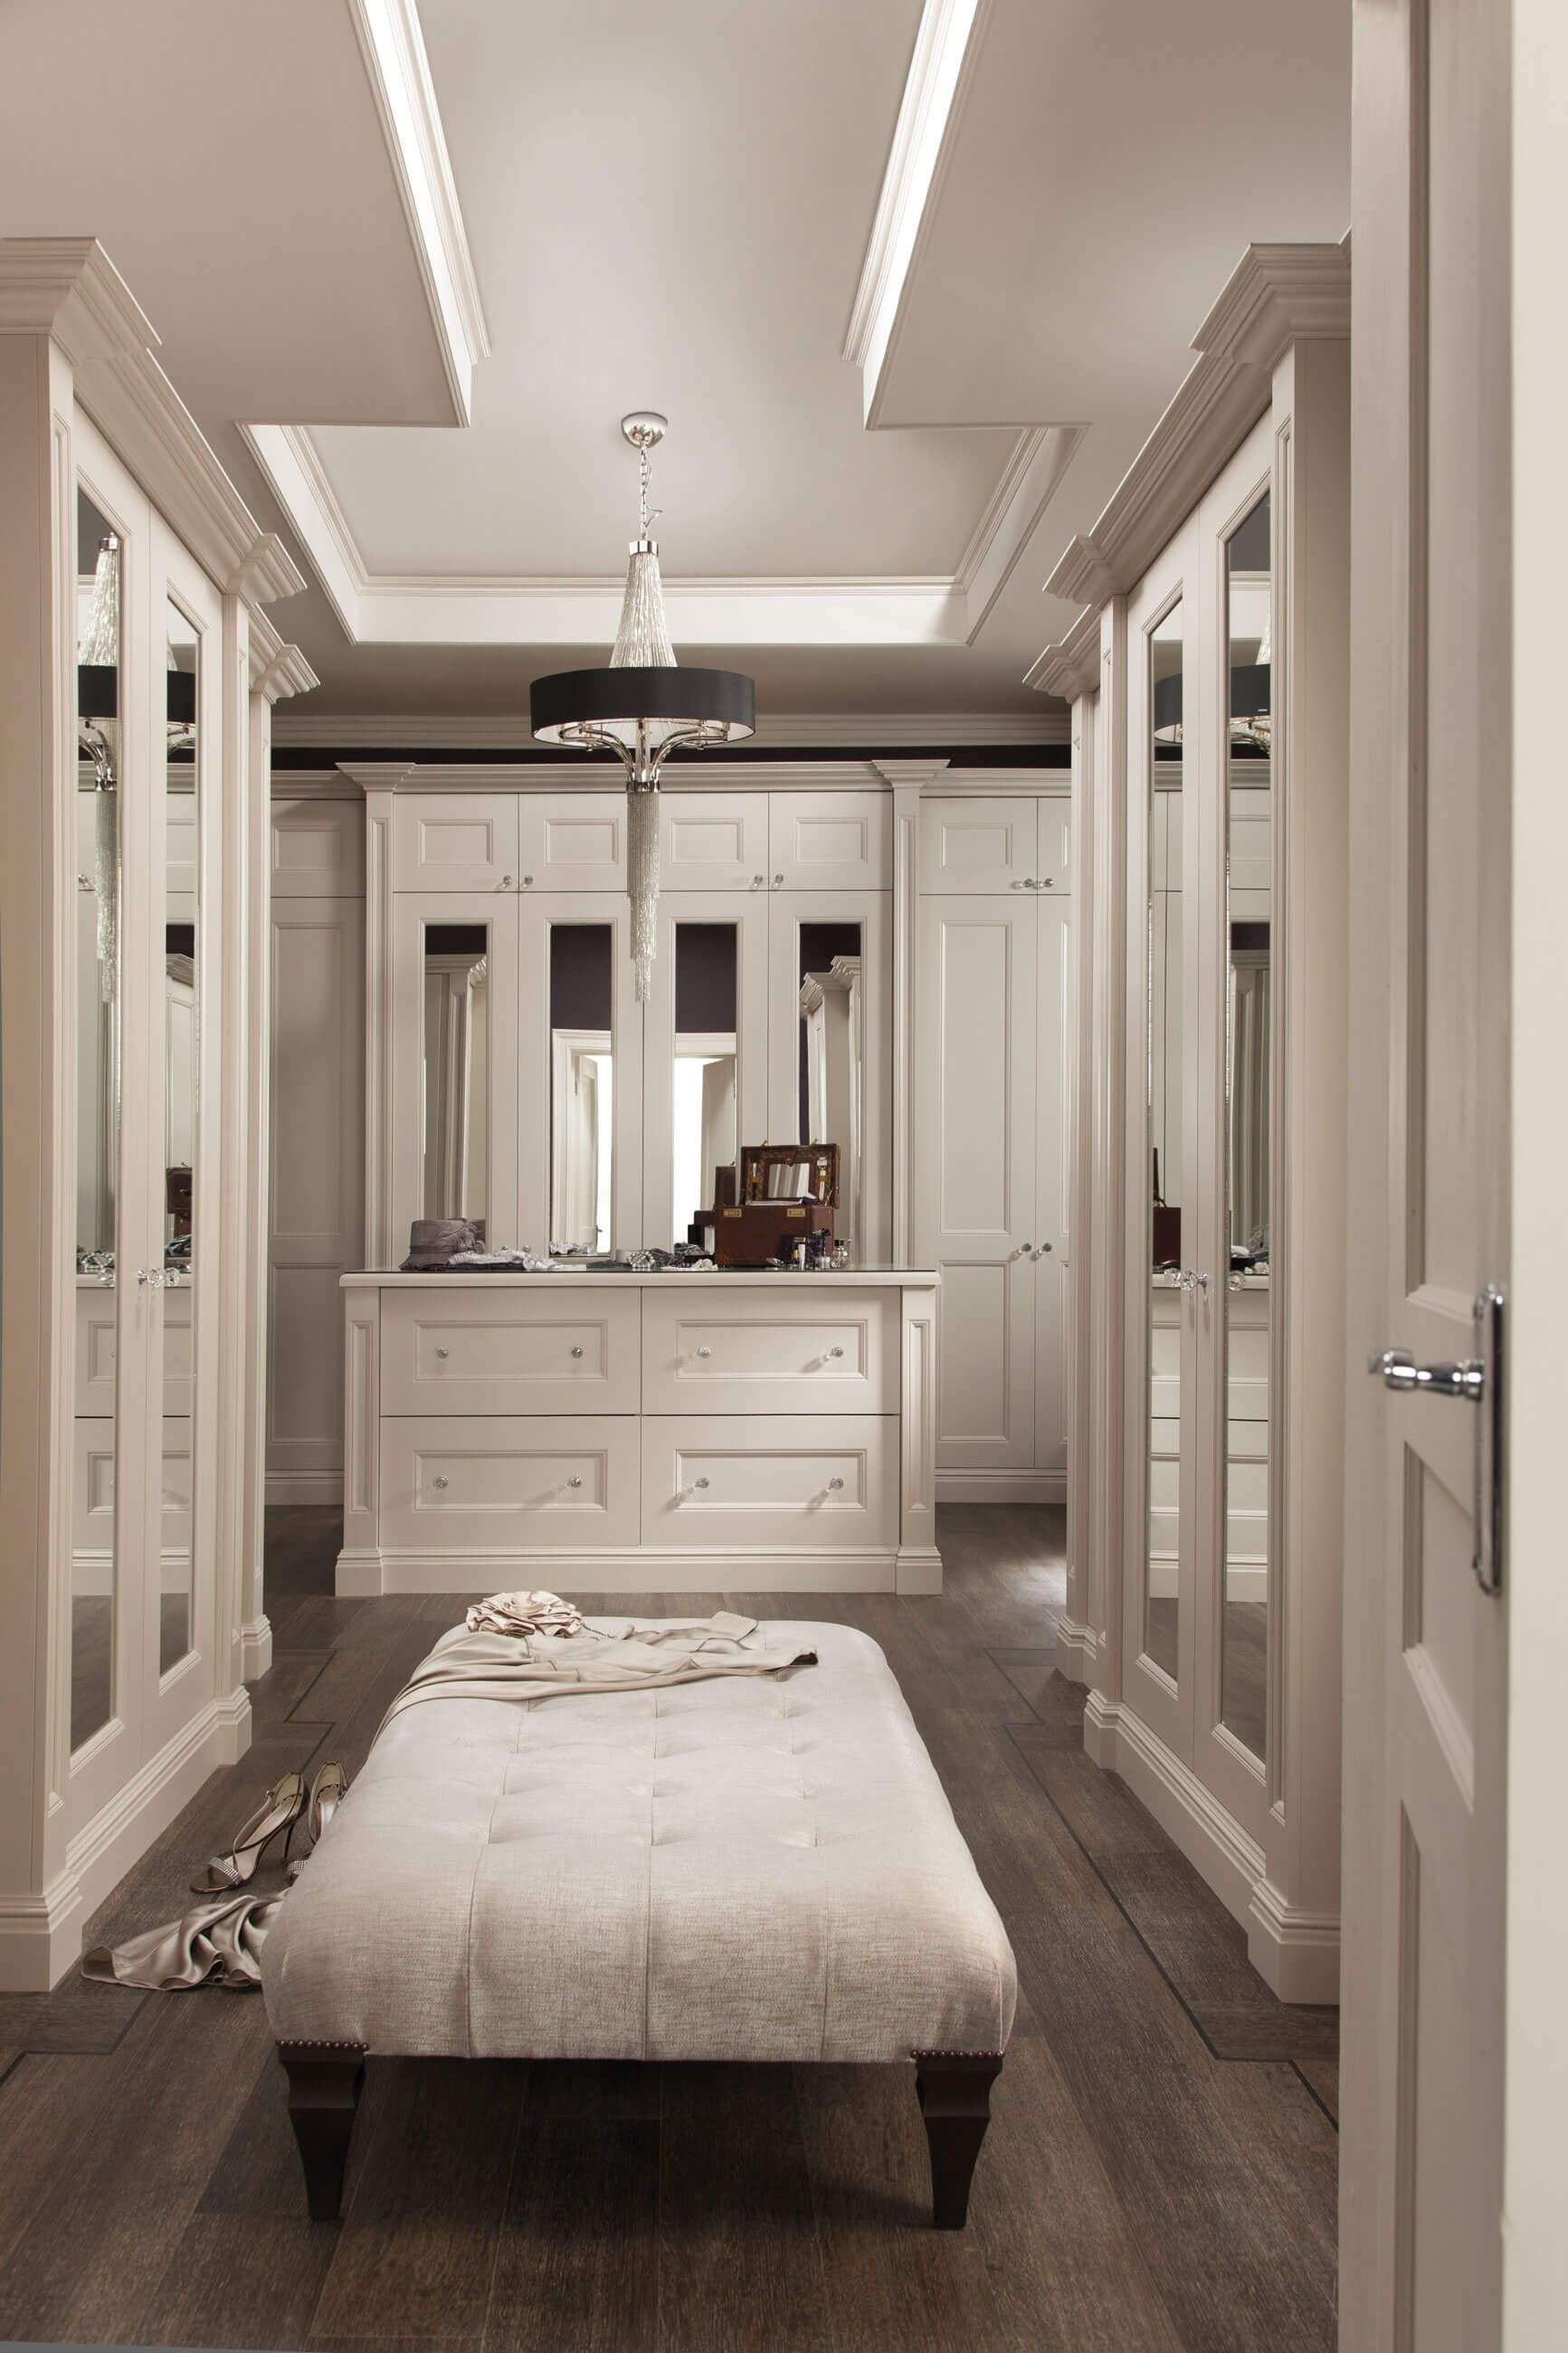 Dressing Rooms Designs Pictures: 30+ Glam Dressing Room Ideas